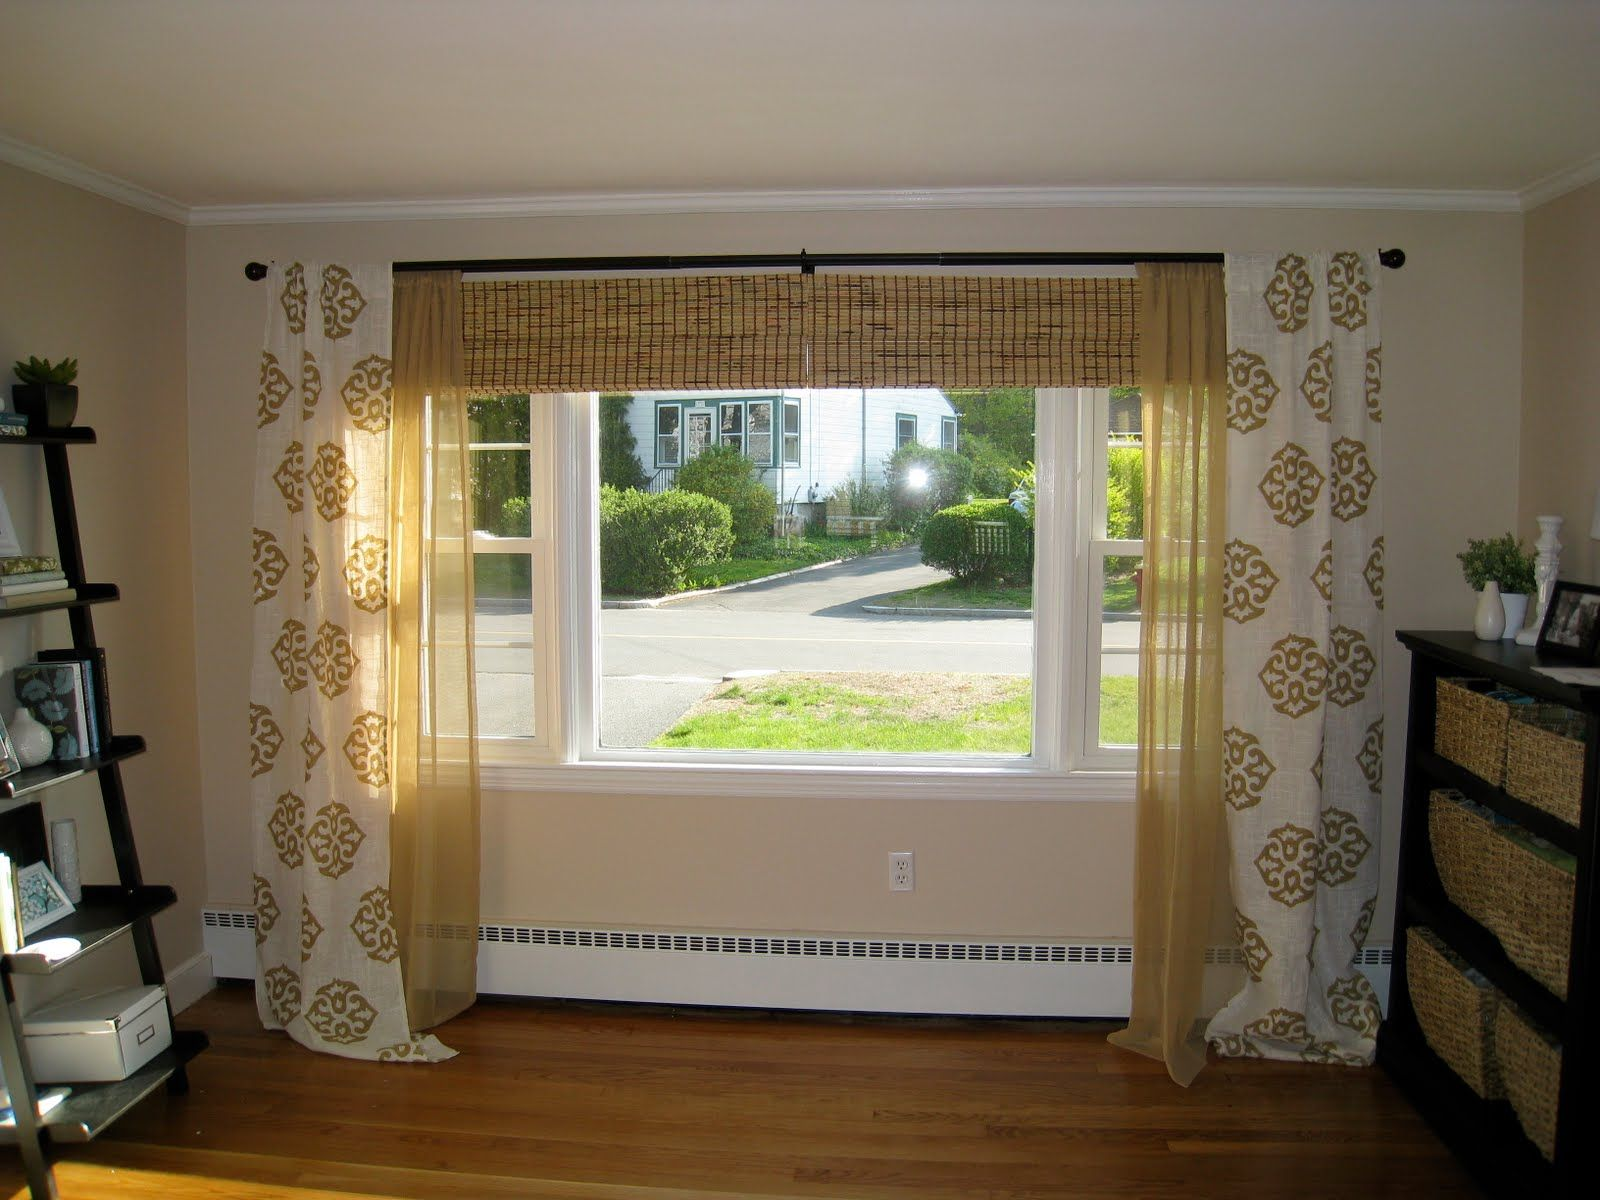 Best Ideas About Picture Window Treatments On Pinterest - Bedroom curtain design